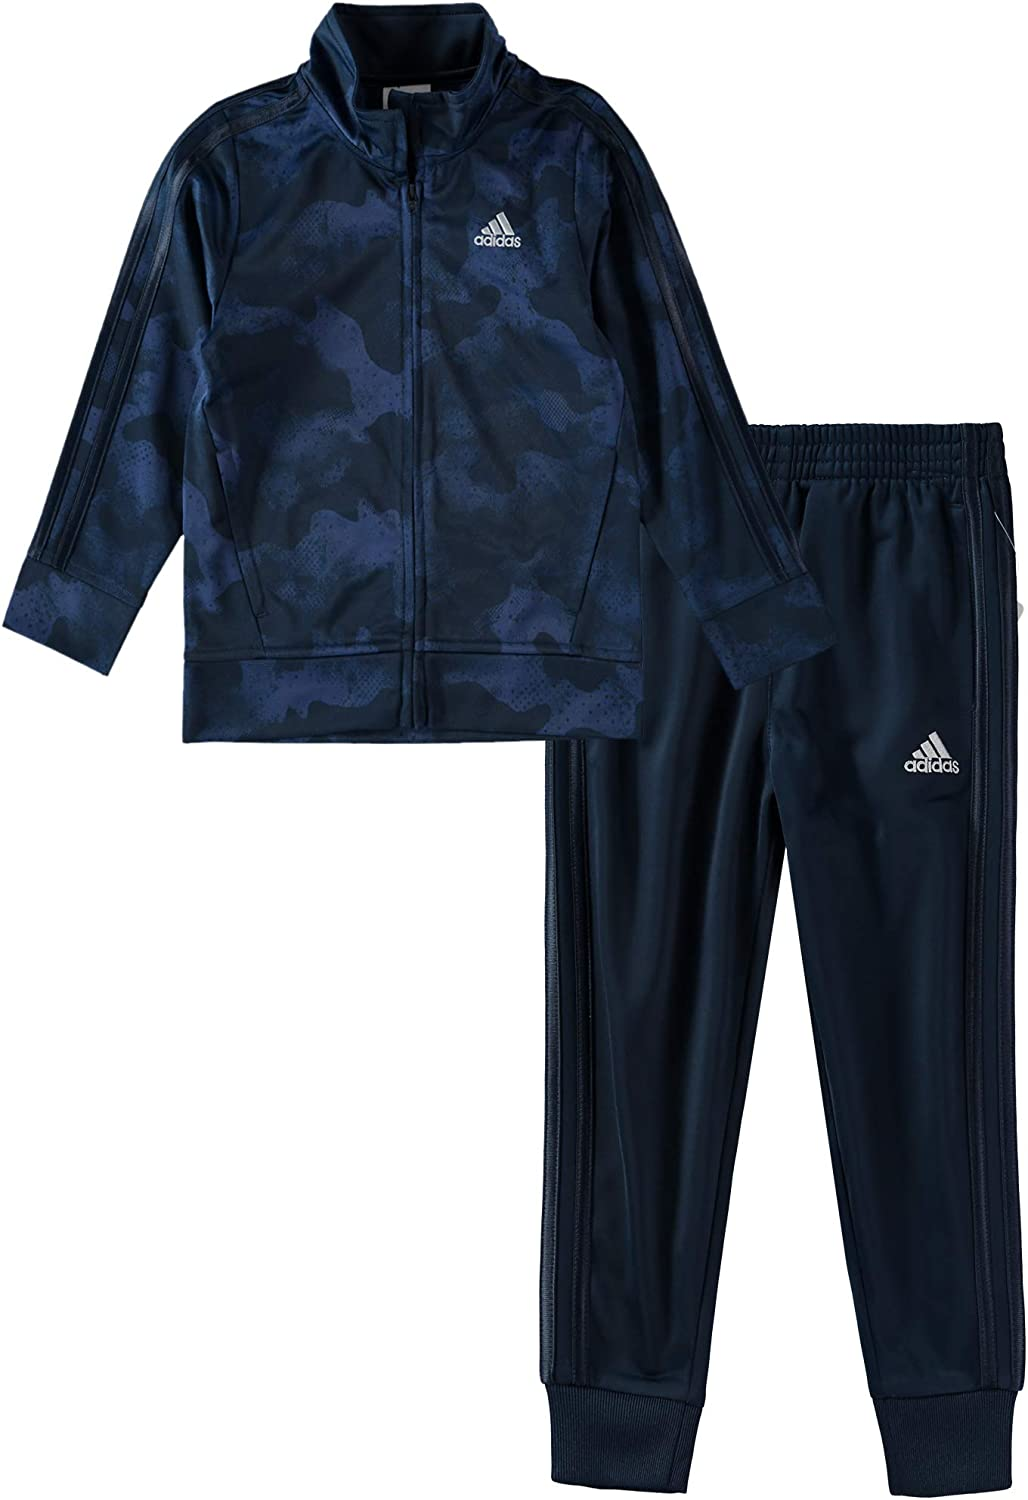 Adidas boys Tricot Jacket and Pant Set Overalls